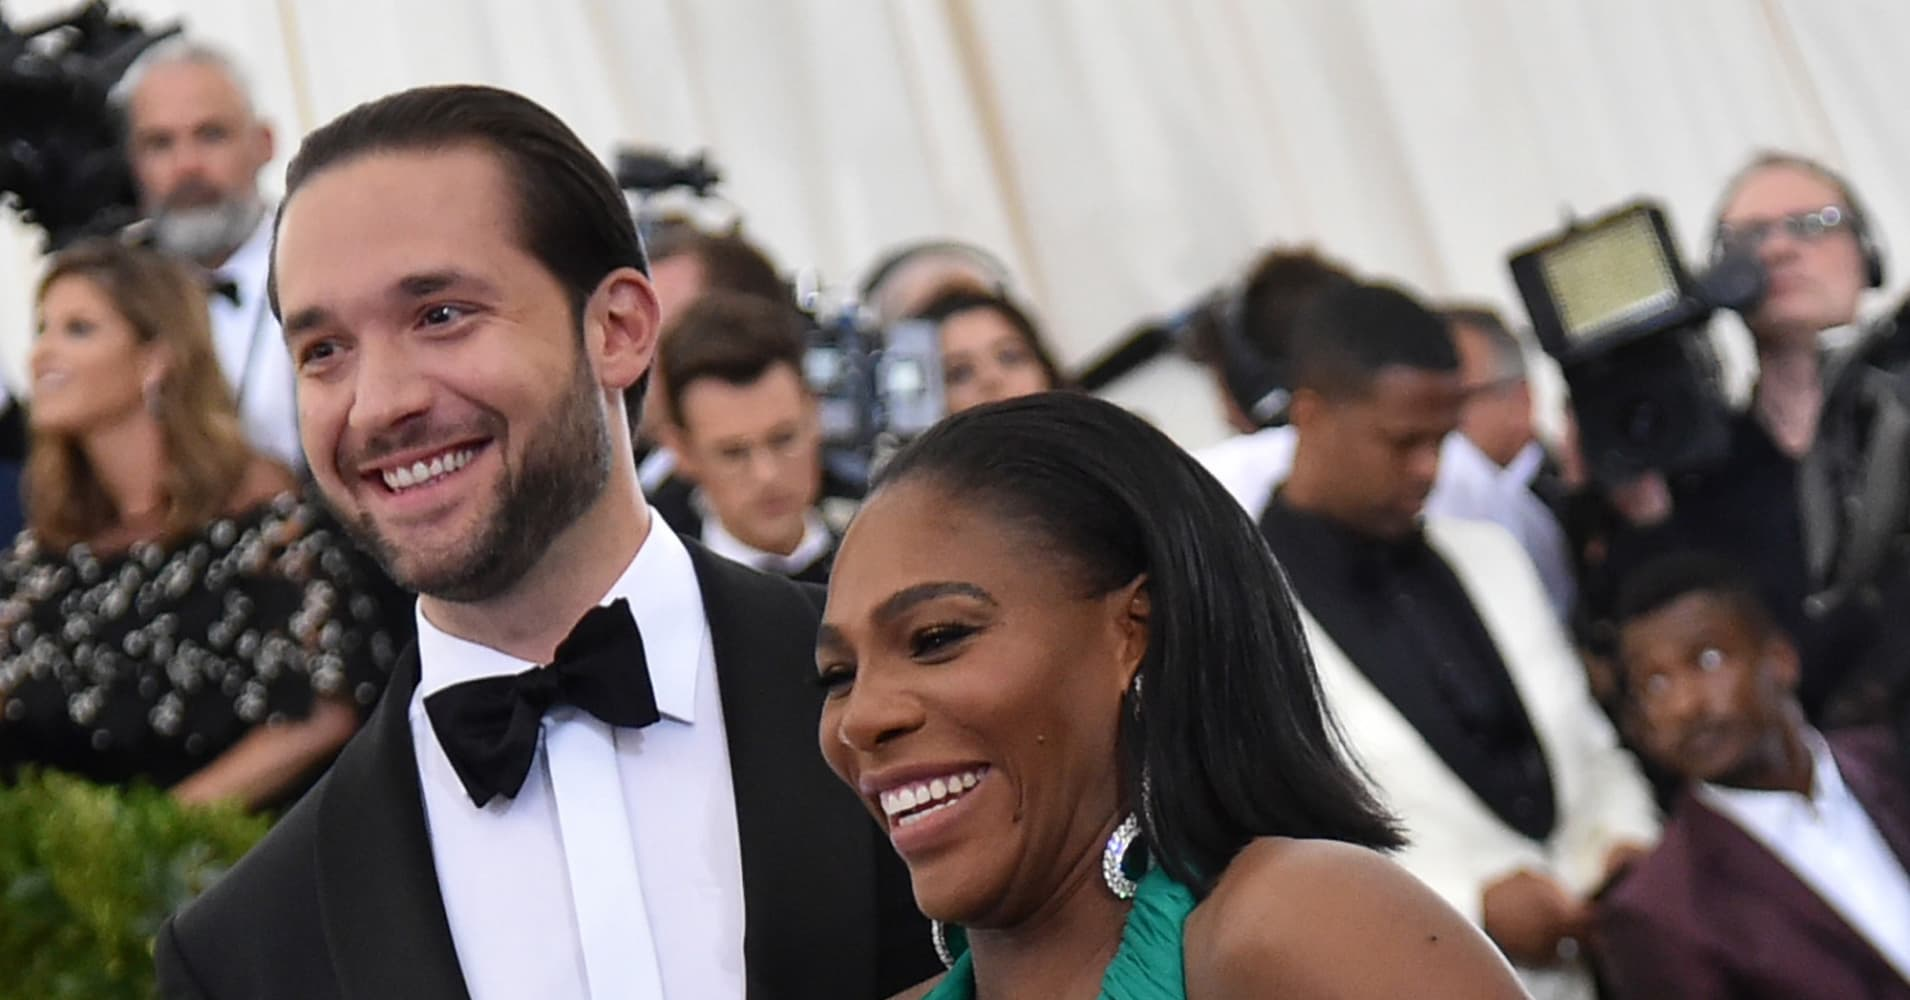 Serena Williams has 3 wishes for her newly born daughter